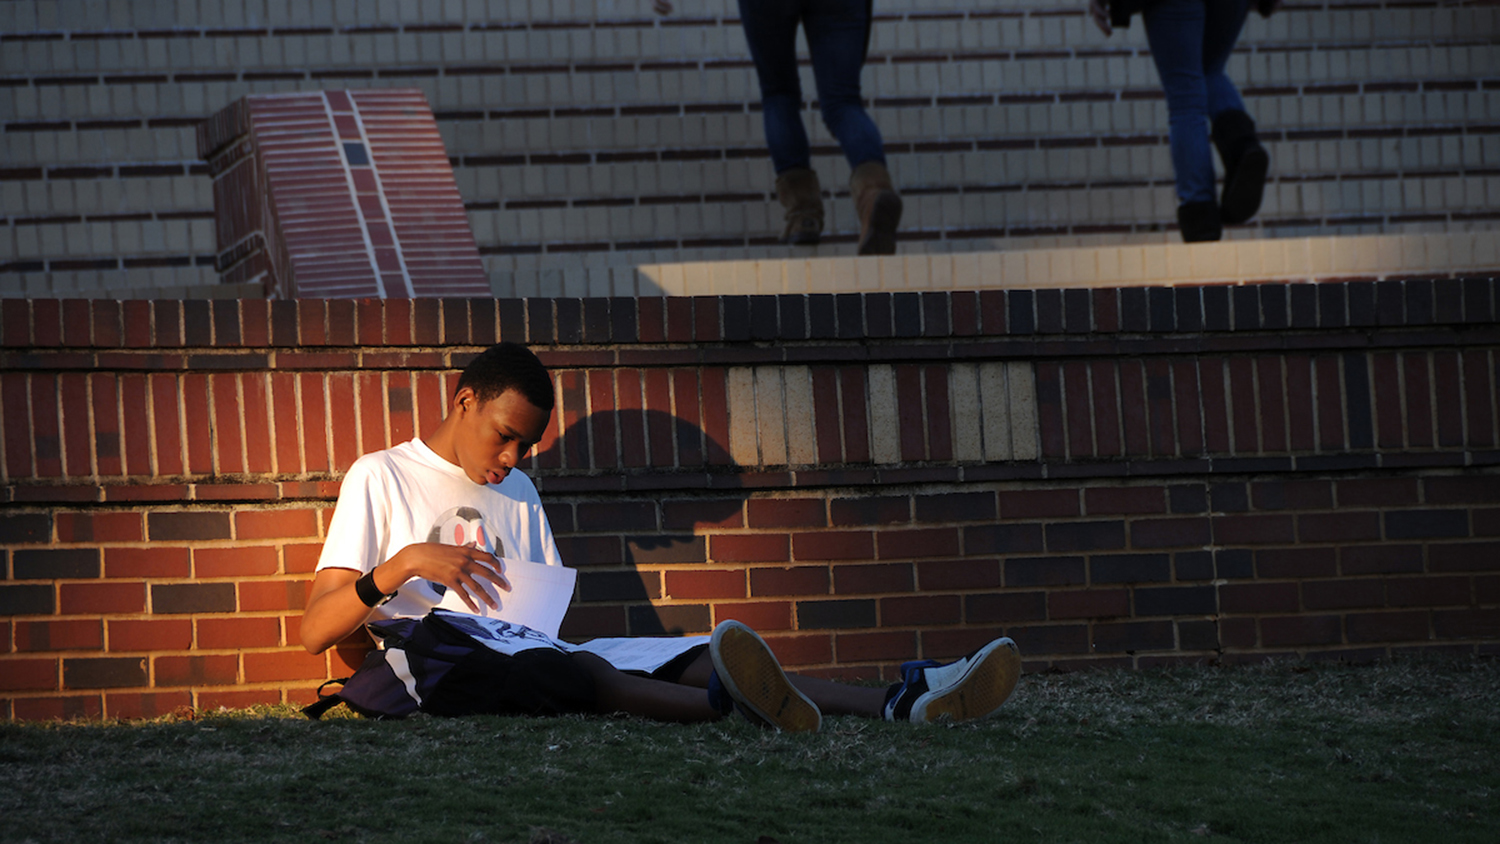 Setting sun reflects upon a student studying on the Court of North Carolina.